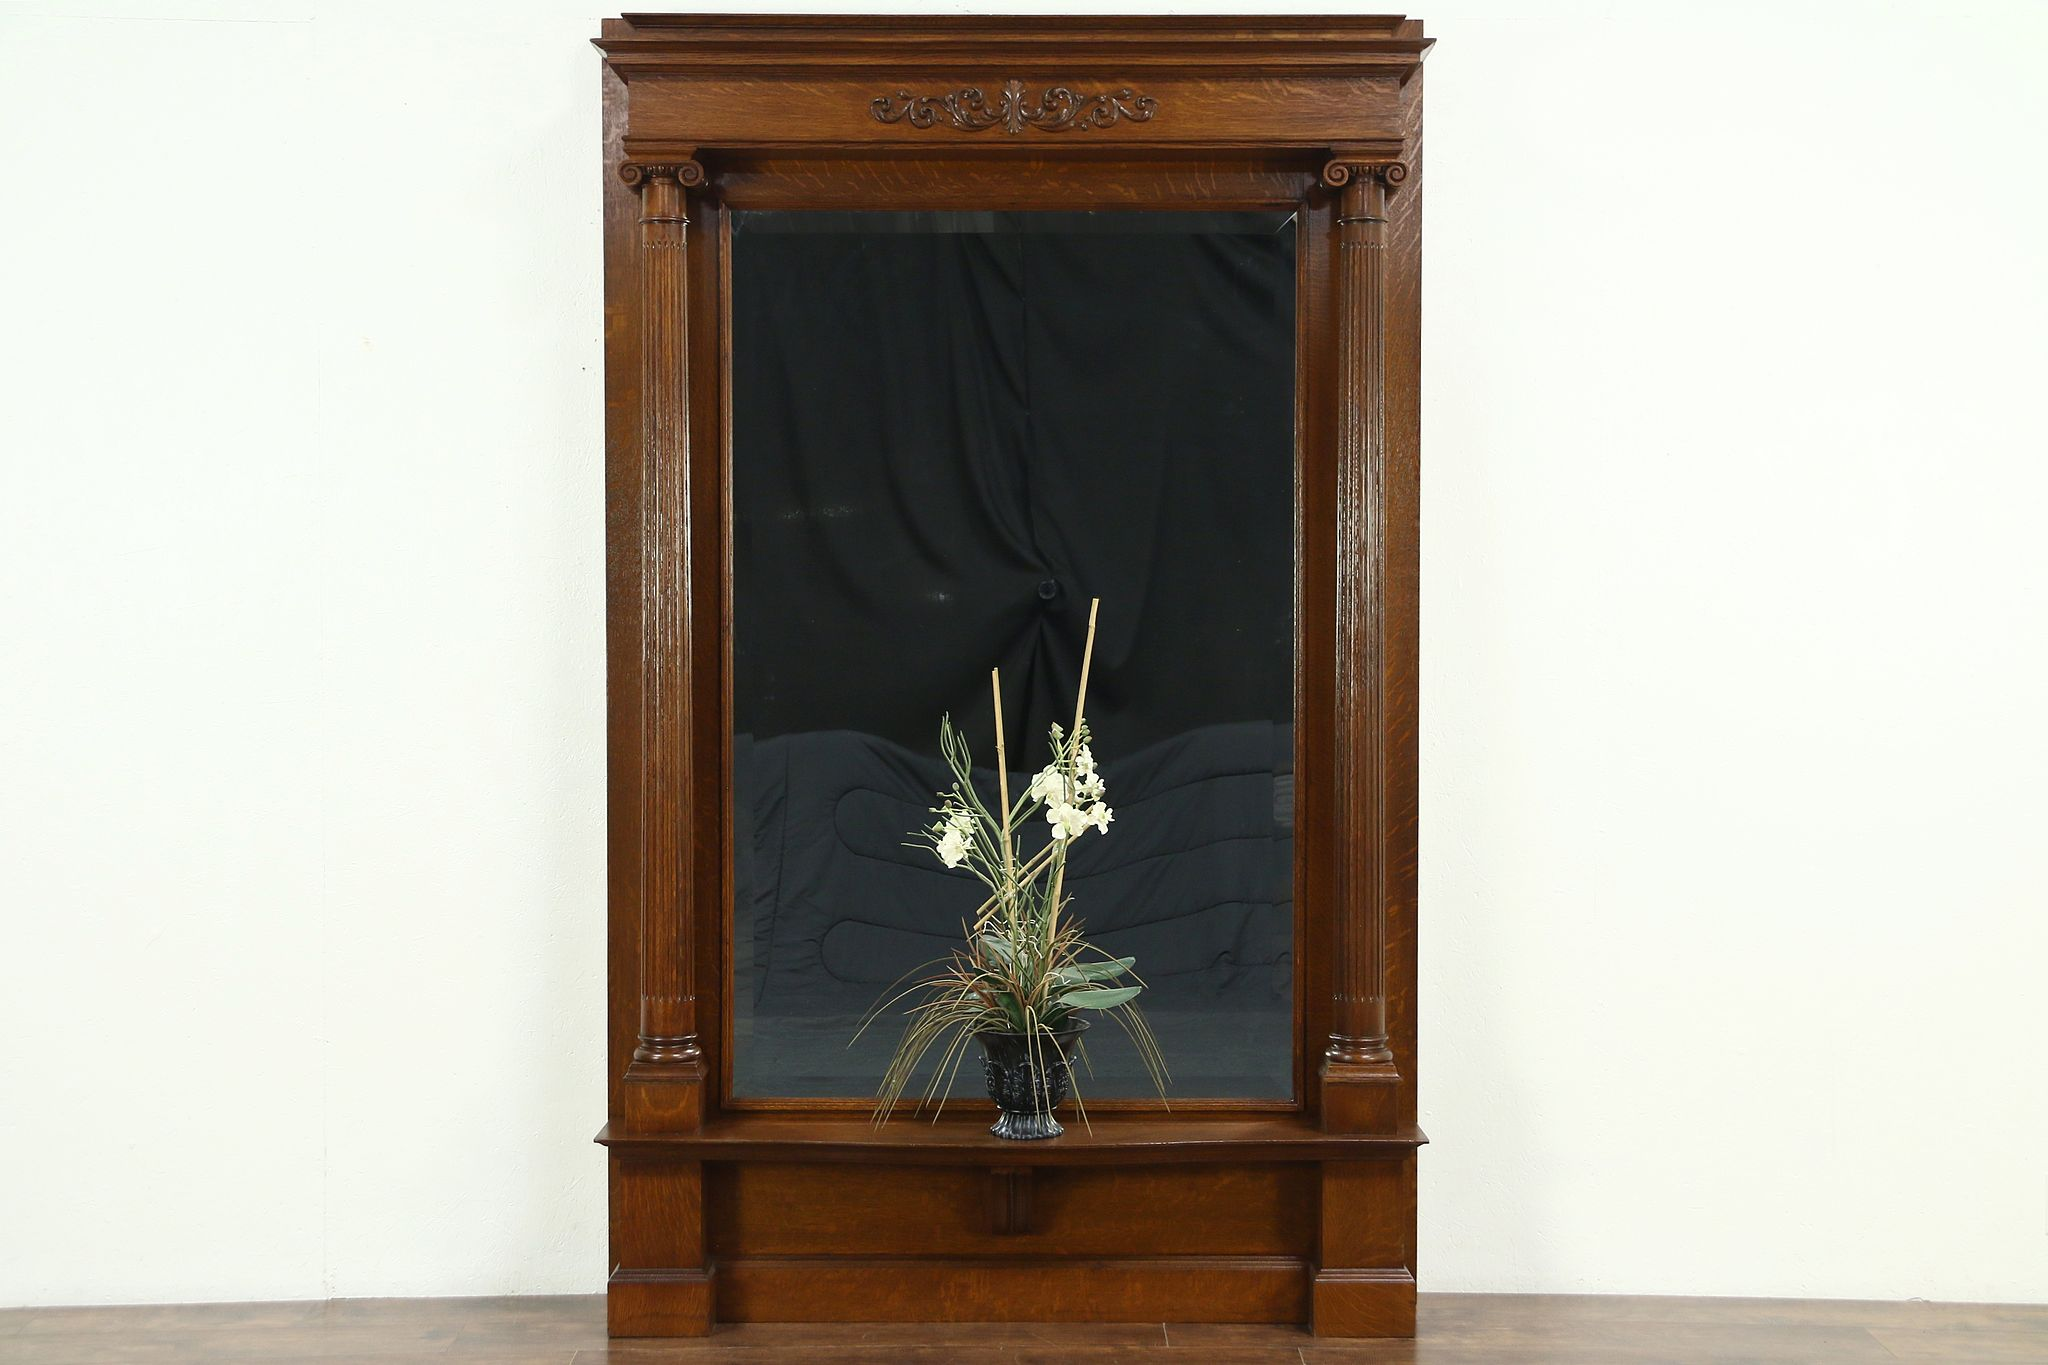 Oak Carved Antique Hall Pier Mirror Fluted Classical Columns Beveled Glass